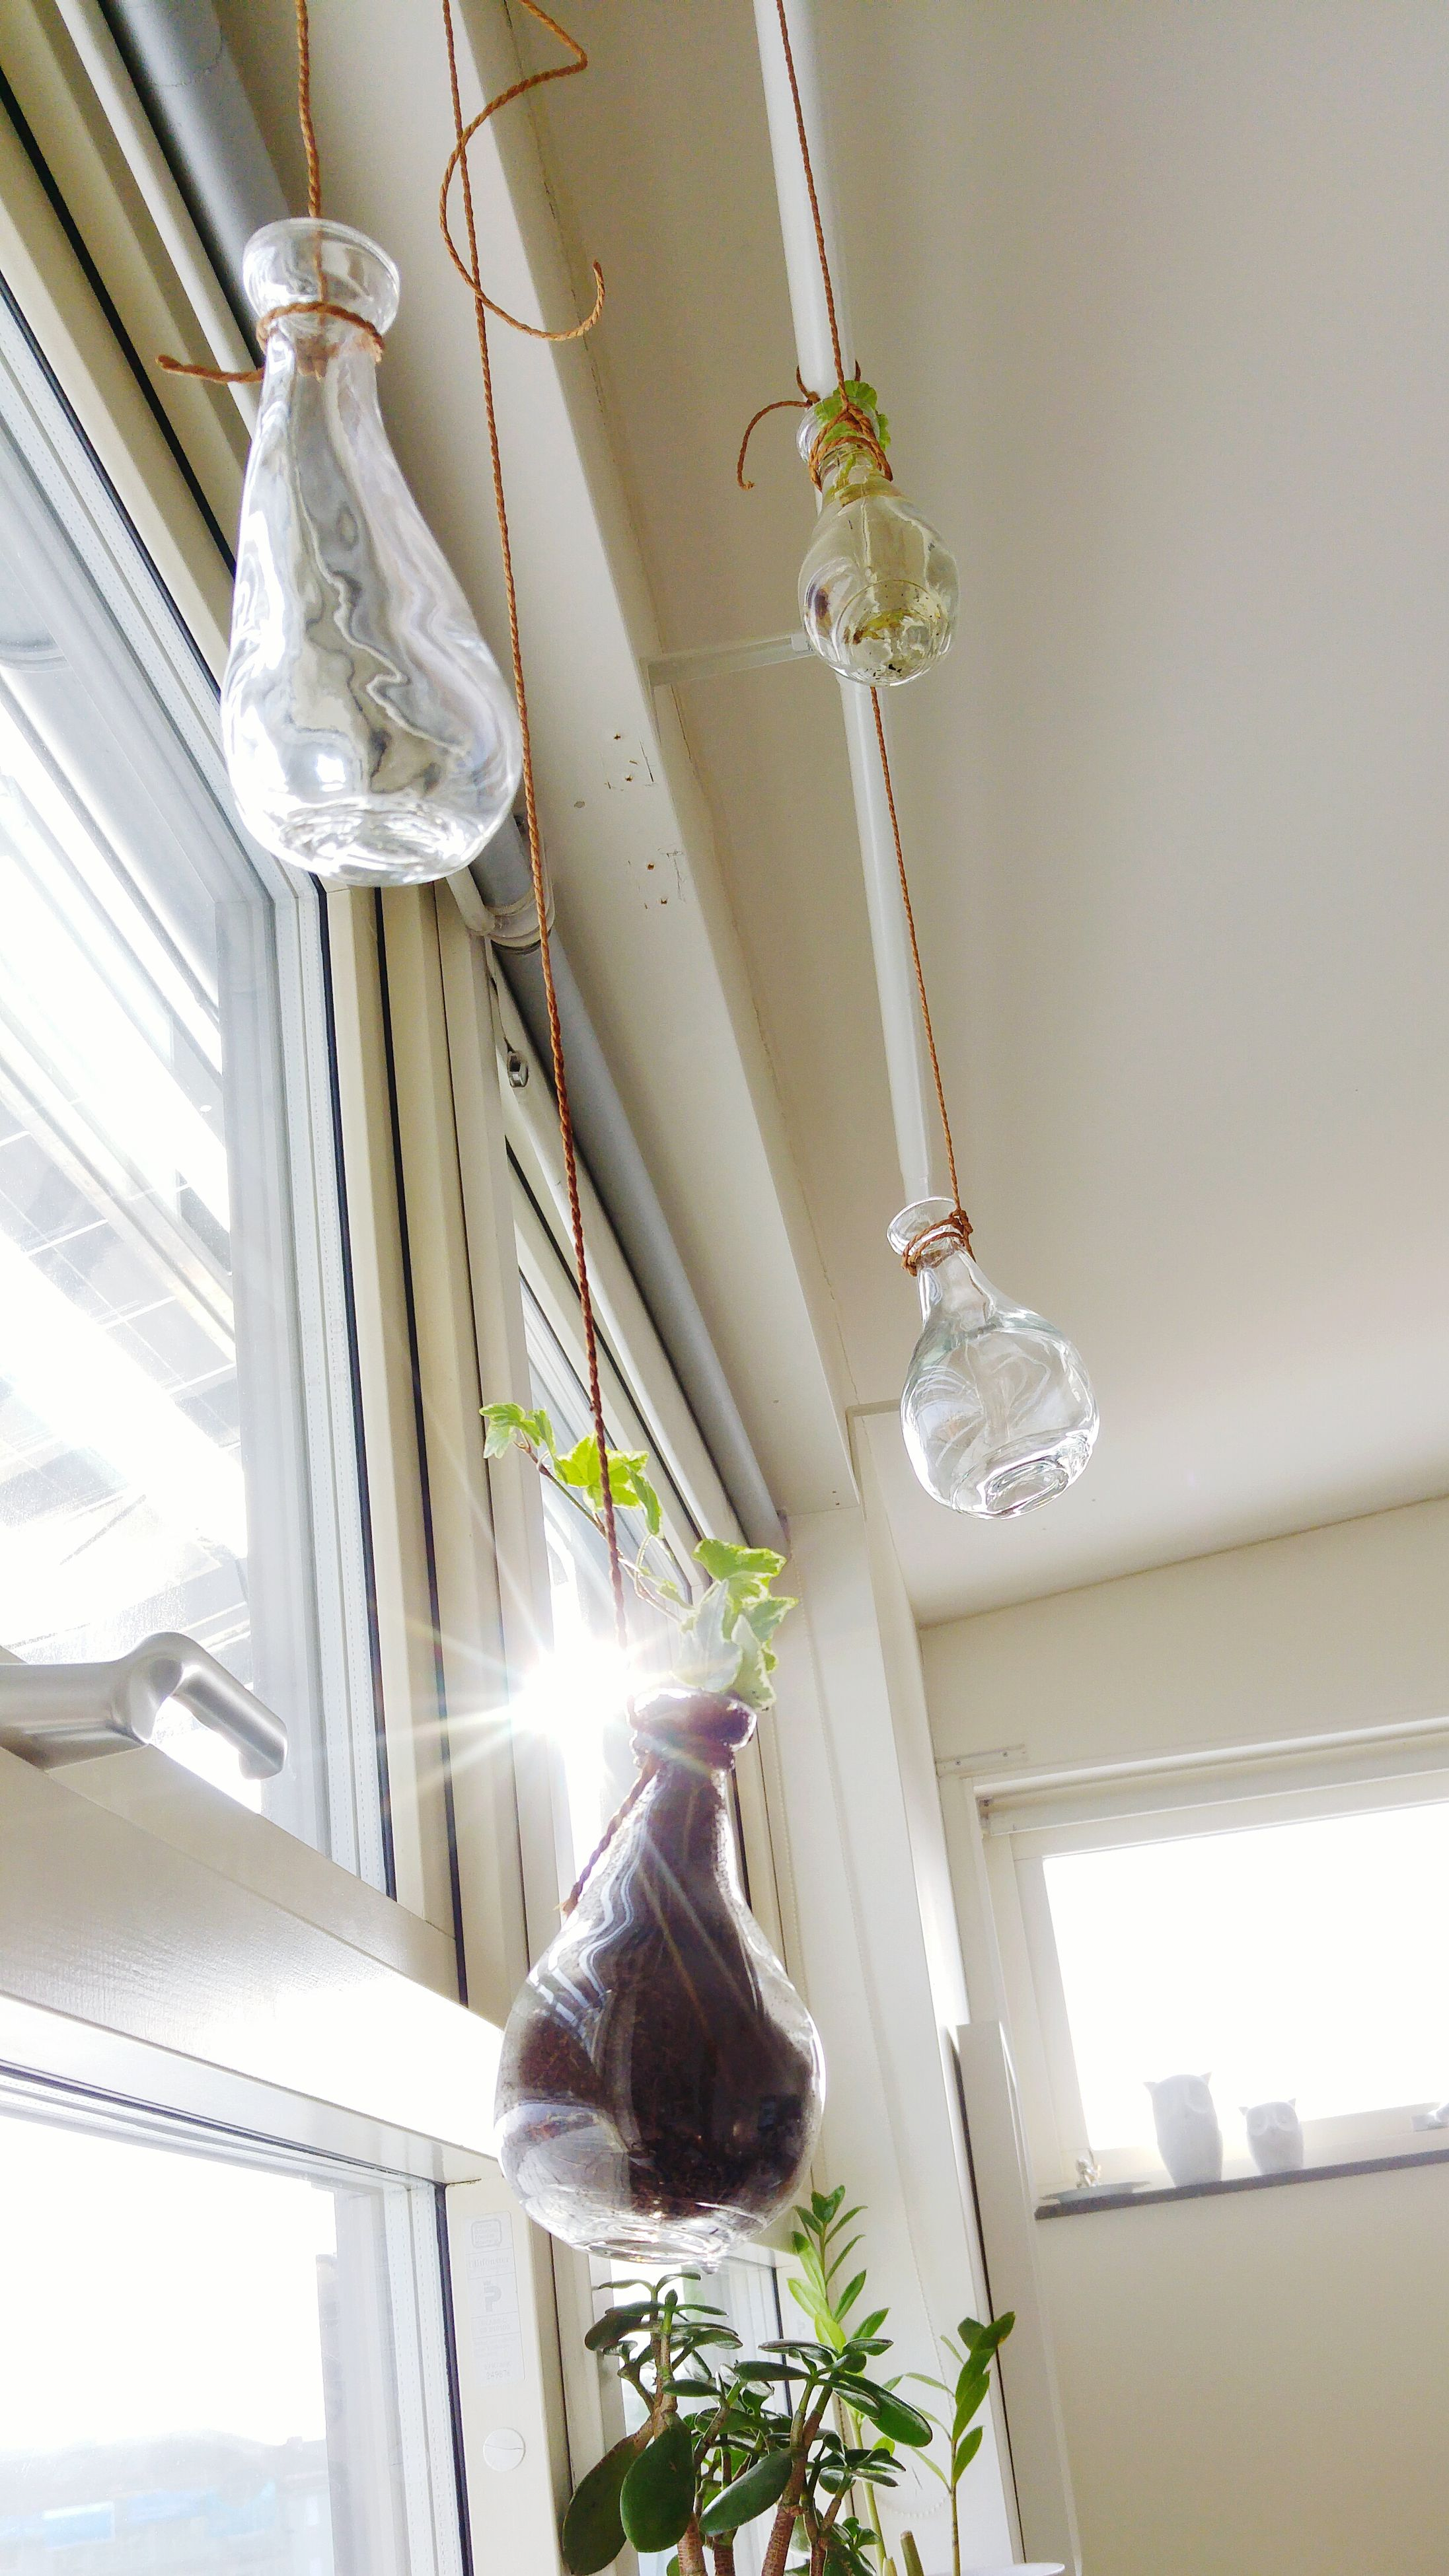 hanging, indoors, ceiling, home interior, no people, low angle view, orchid, built structure, architecture, day, illuminated, wind chime, christmas ornament, nature